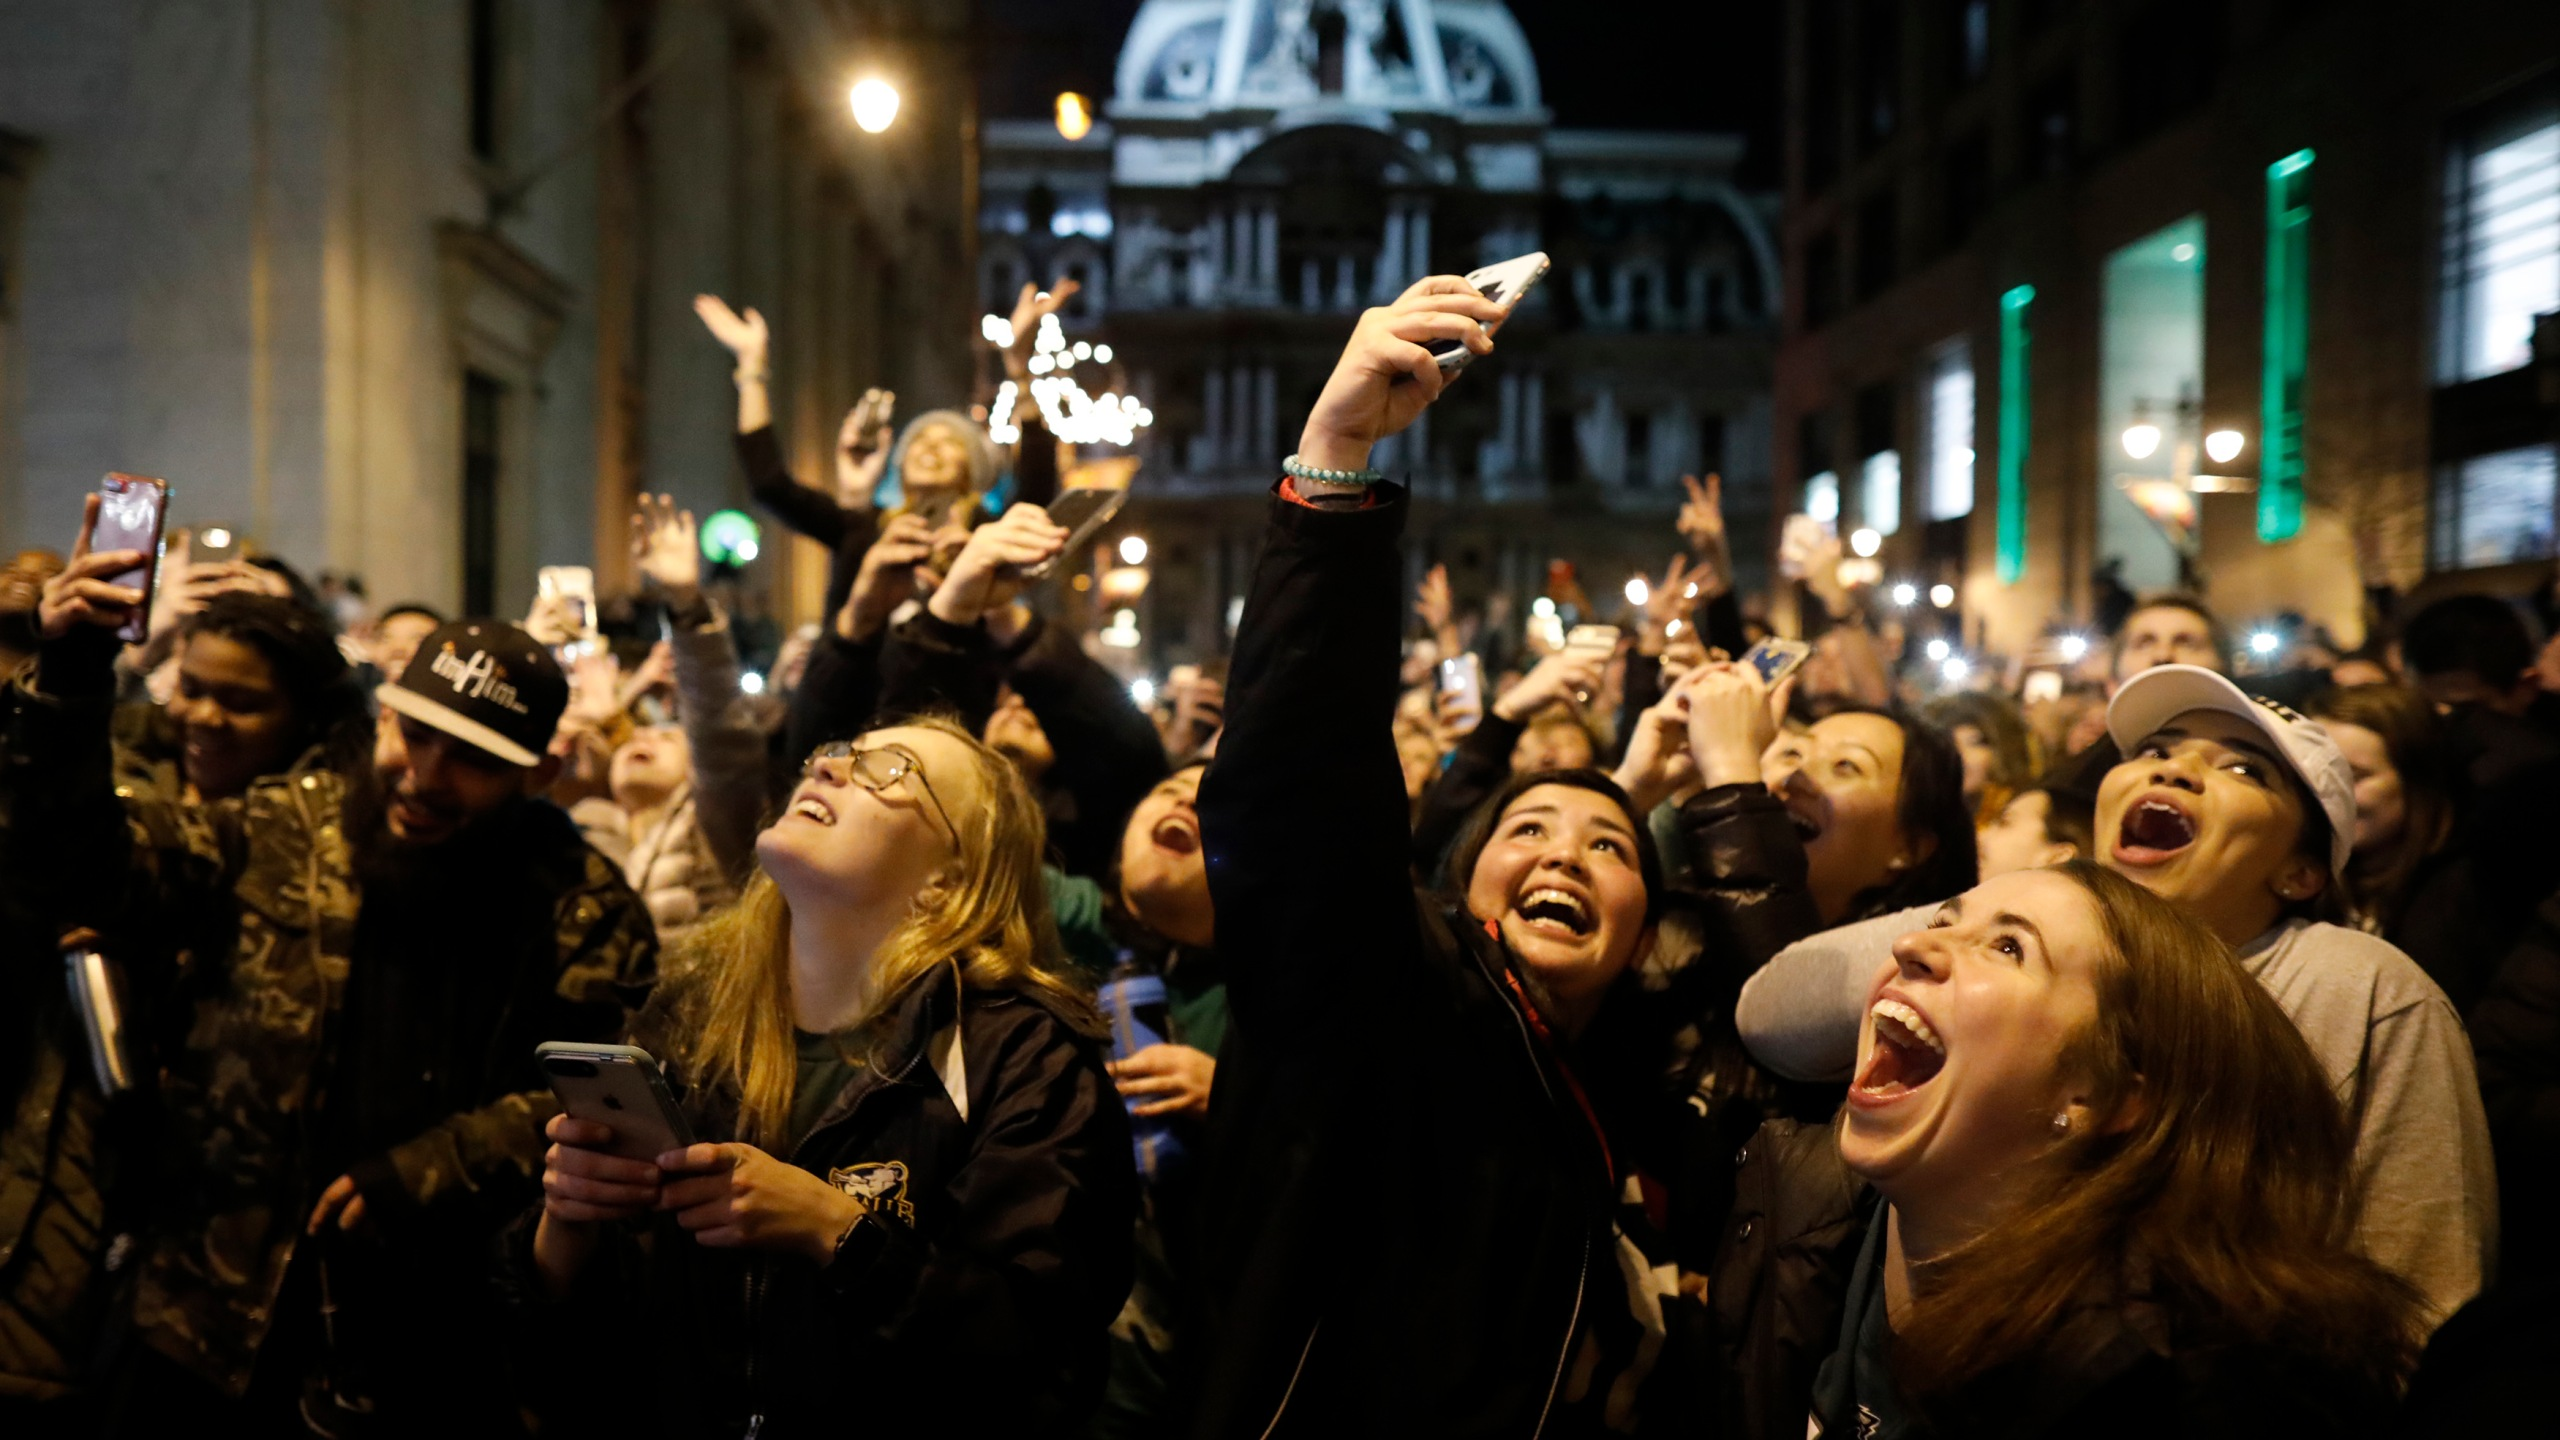 Fans celebrate in Center City after the Philadelphia Eagles defeated the New England Patriots to win the Super Bowl on Feb. 4, 2018, in Philadelphia, Penn. (Credit: Aaron P. Bernstein/Getty Images)